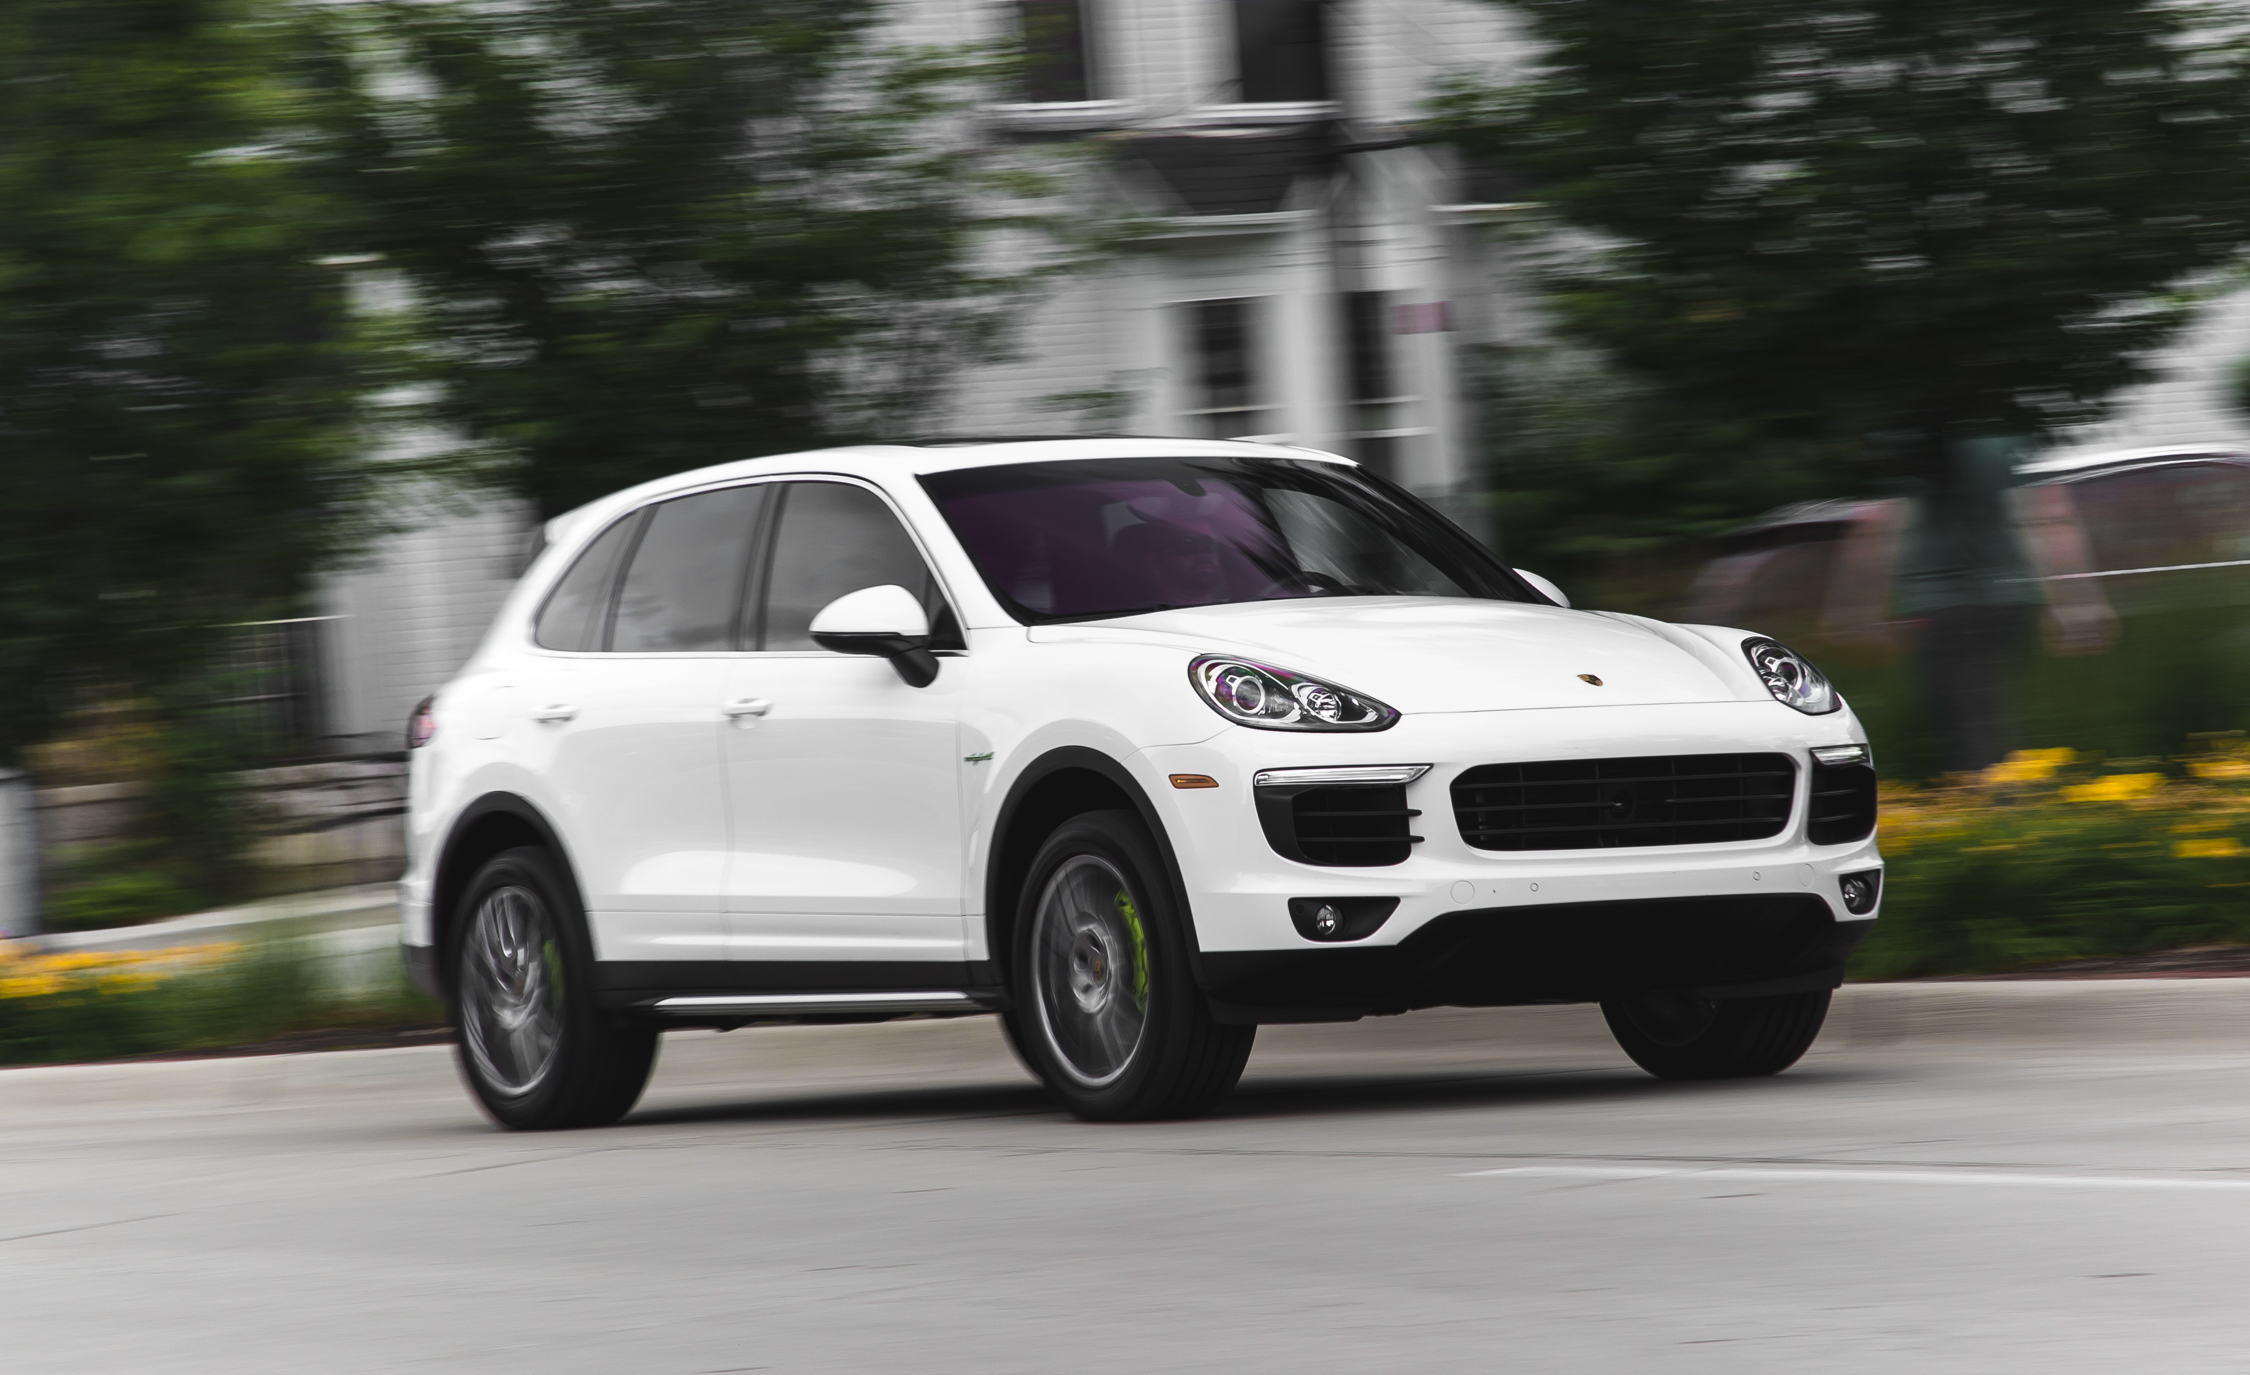 2015 porsche cayenne s e hybrid interior speedometer 7546 cars performance reviews and test. Black Bedroom Furniture Sets. Home Design Ideas